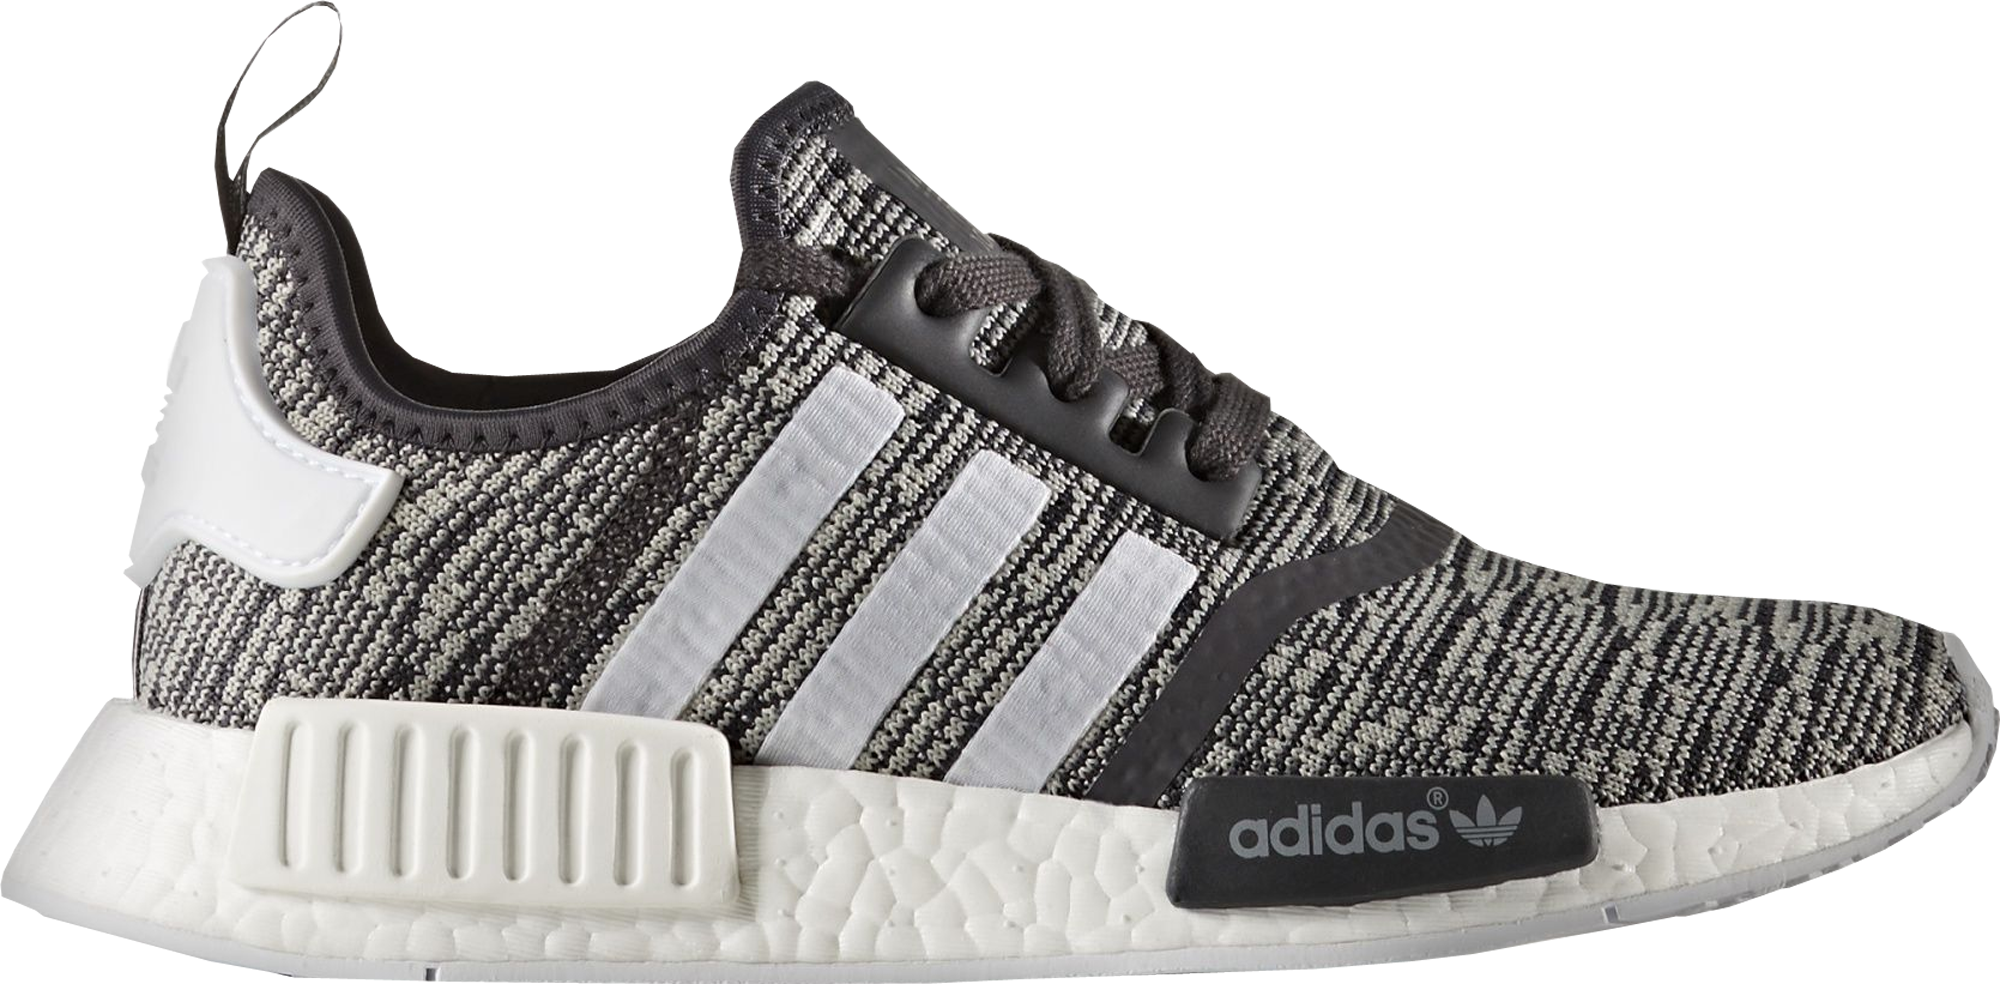 adidas NMD R1 Glitch Medium Grey (W)